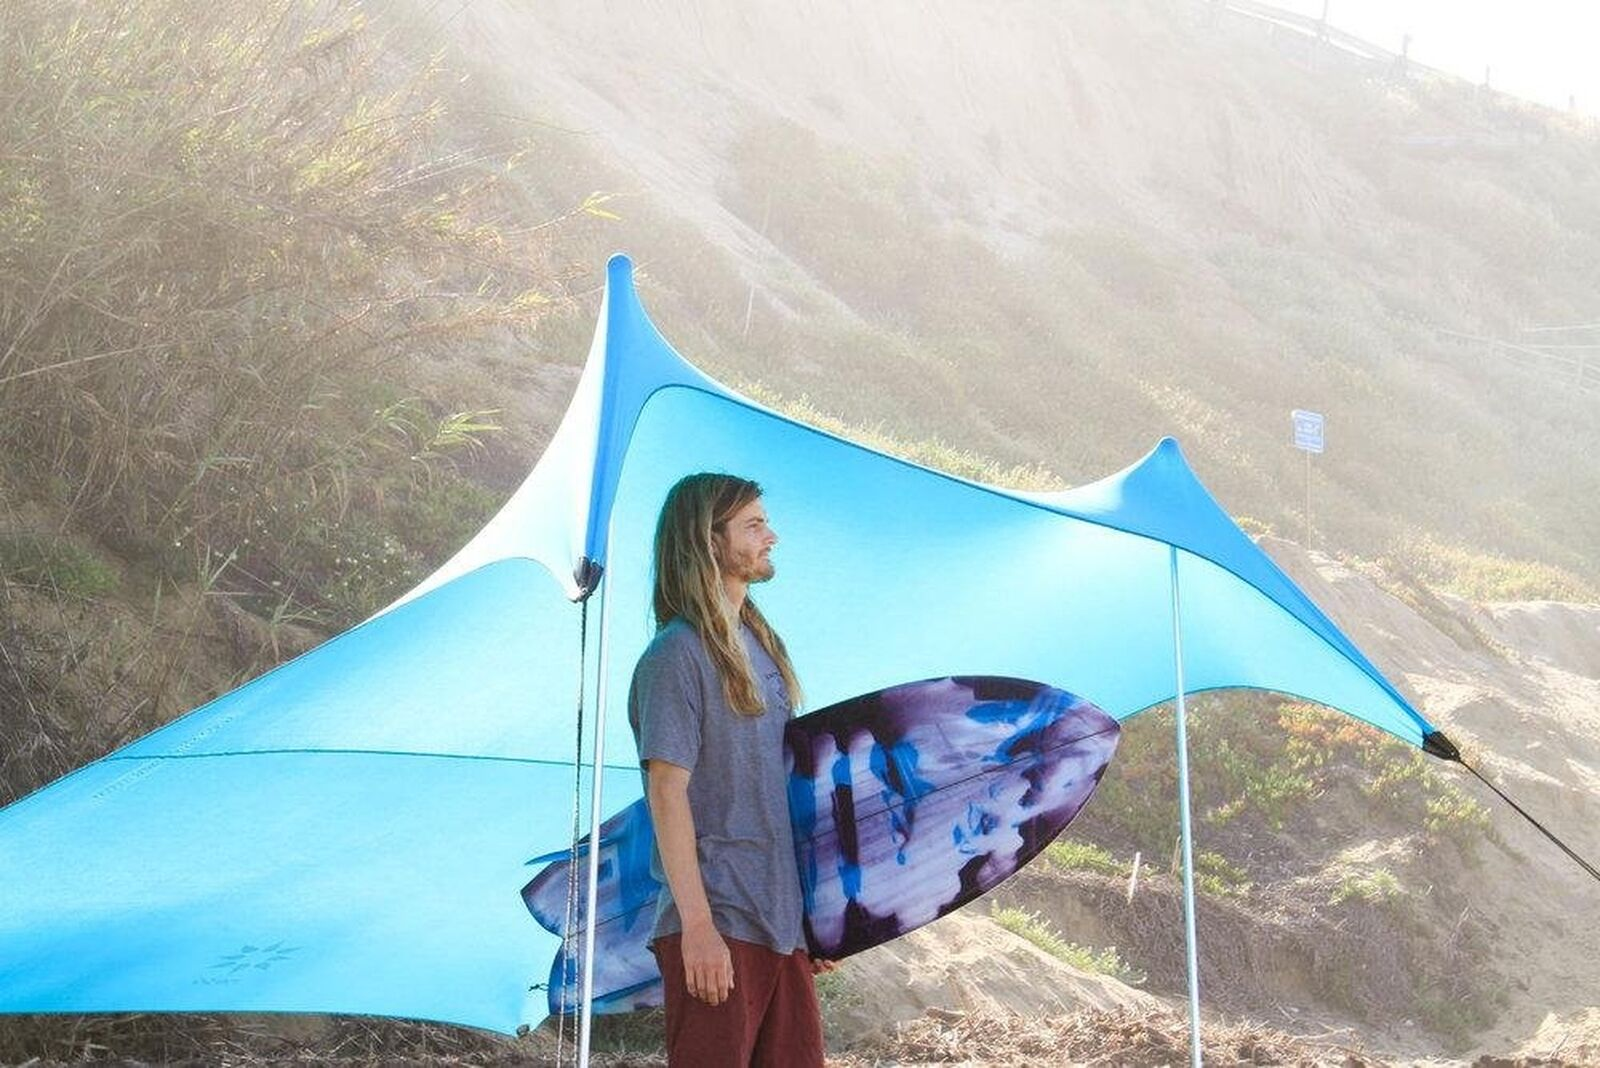 Neso Tents  Grande Beach Tent, 7ft Tall, 9 x 9ft, Reinforced Corners and Coole...  100% free shipping